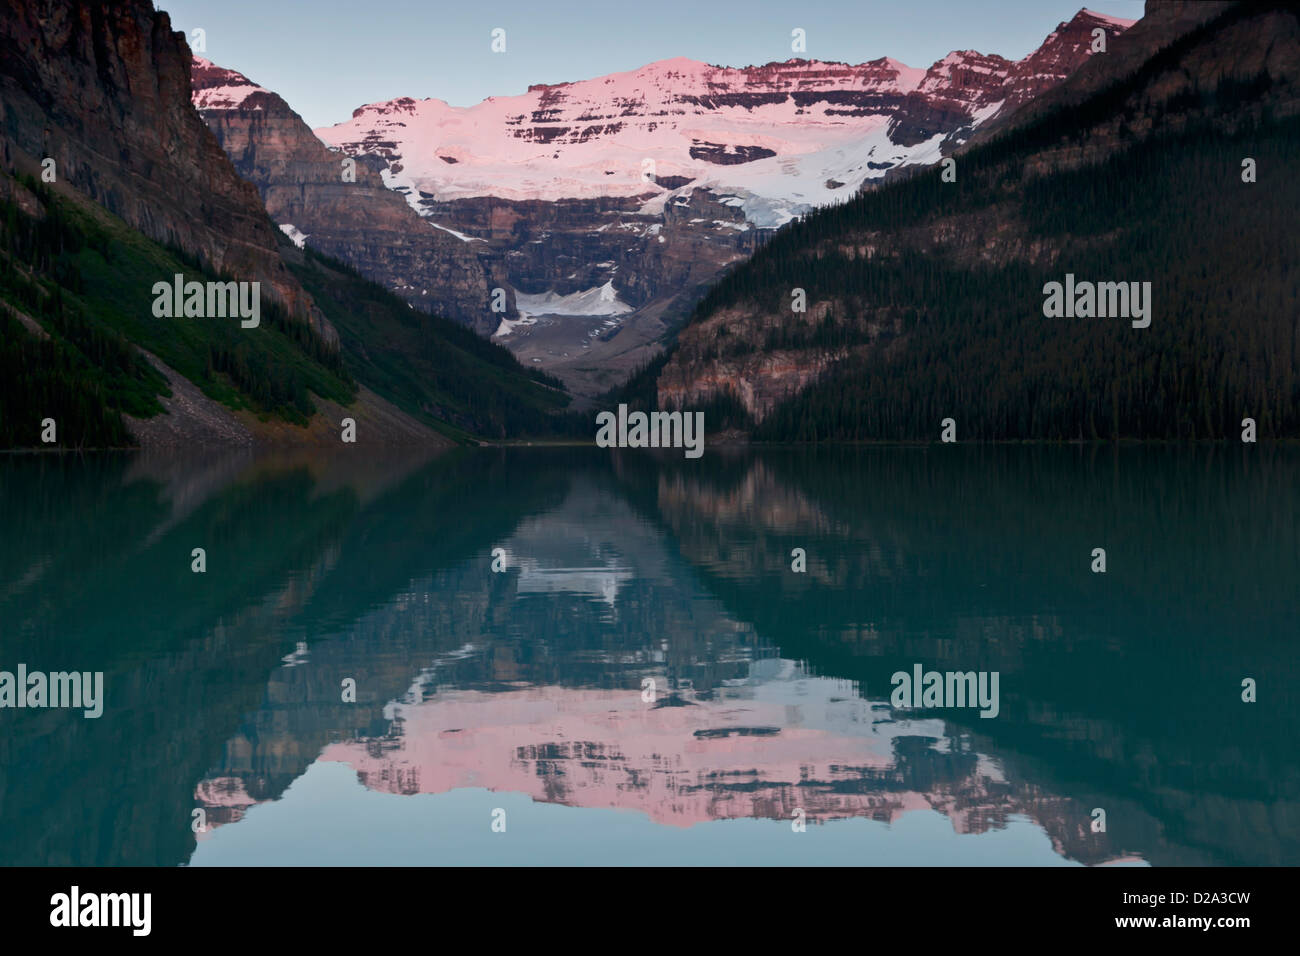 Morning alpenglow on Mount Victoria reflected in Lake Louise, Banff National Park, Canadian Rockies, Alberta, Canada. - Stock Image